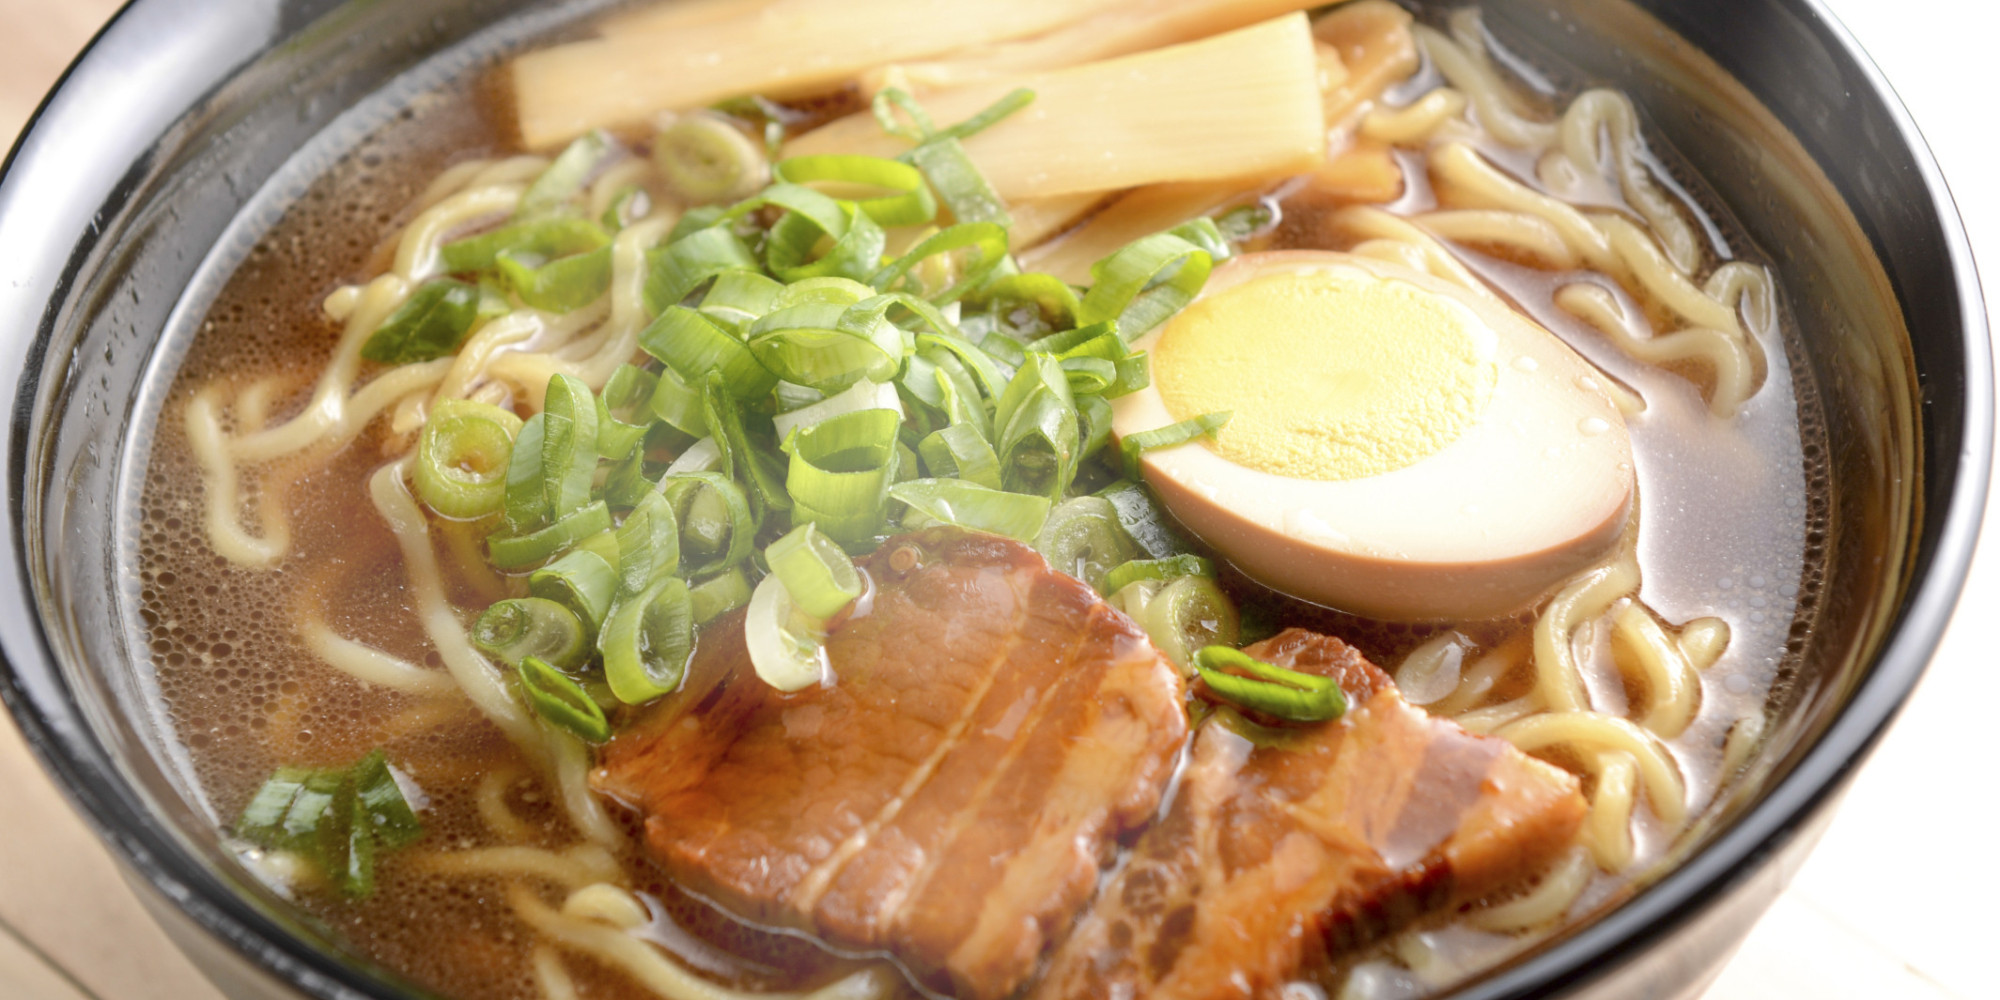 So Just How Bad Is Ramen For You Anyway Huffpost